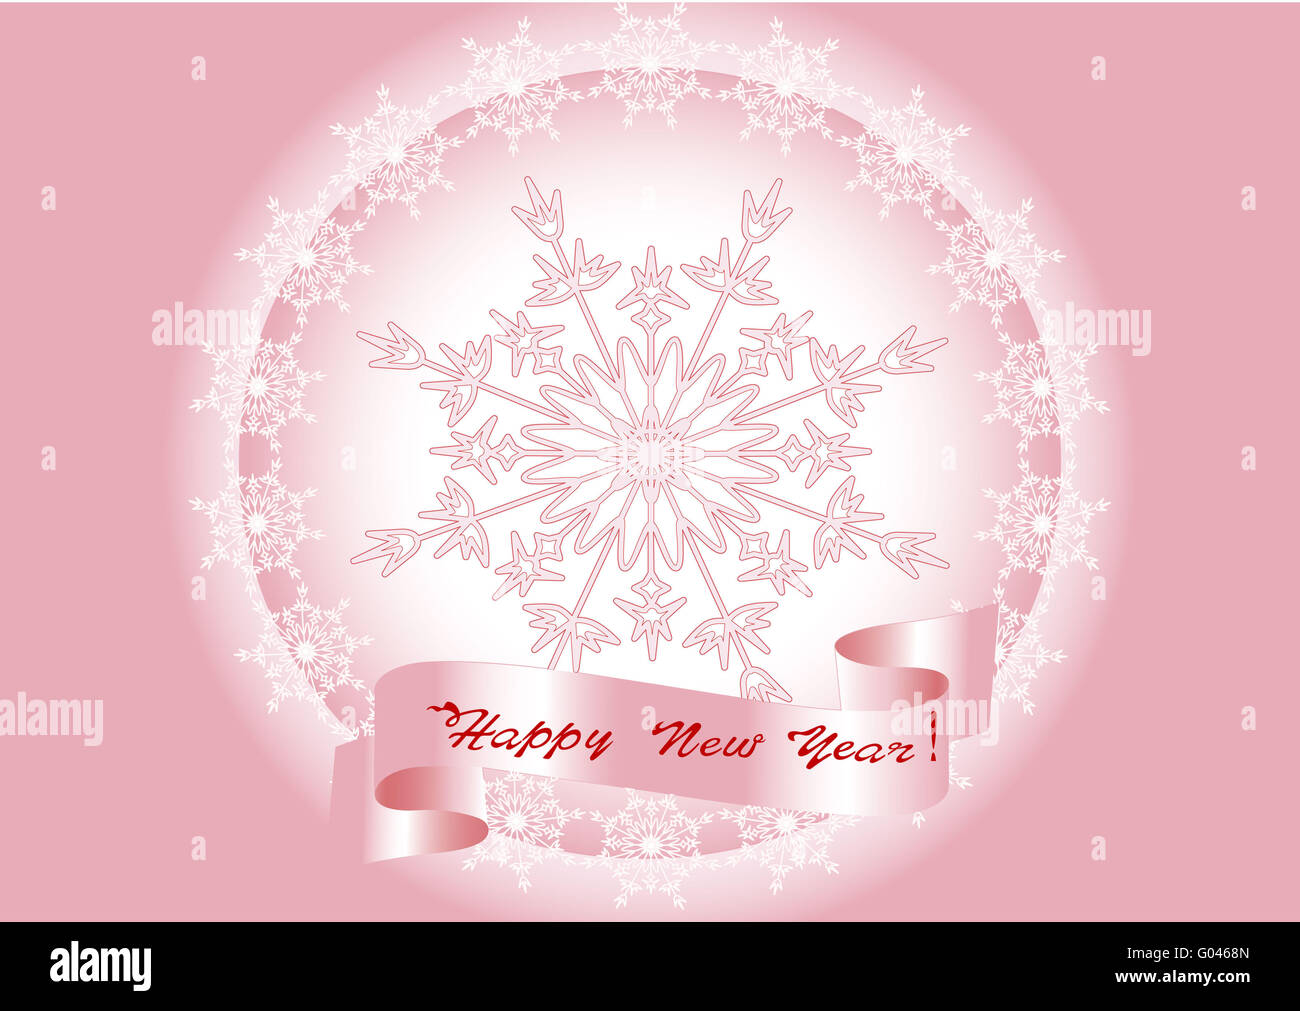 Congratulatory card Happy New Year and Merry Chris - Stock Image